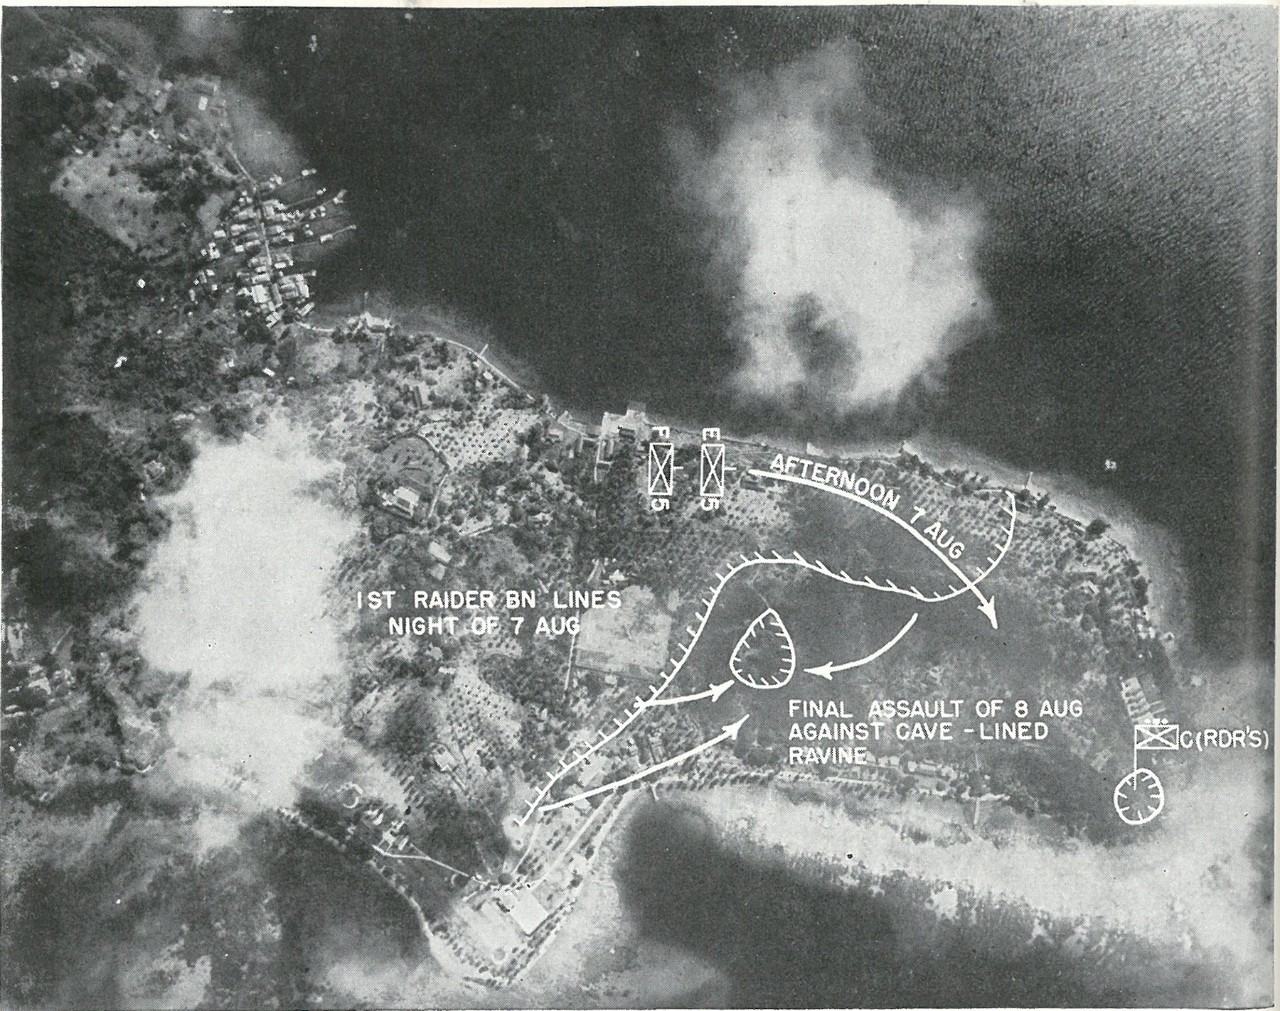 FINAL ASSAULTS ON TULAGI were delivered by elements of 1st Raider Battalion and 2d Battalion, 5th Marines, as shown on overprint. photograph was taken by Navy carrier-planes during strike of 4 May.